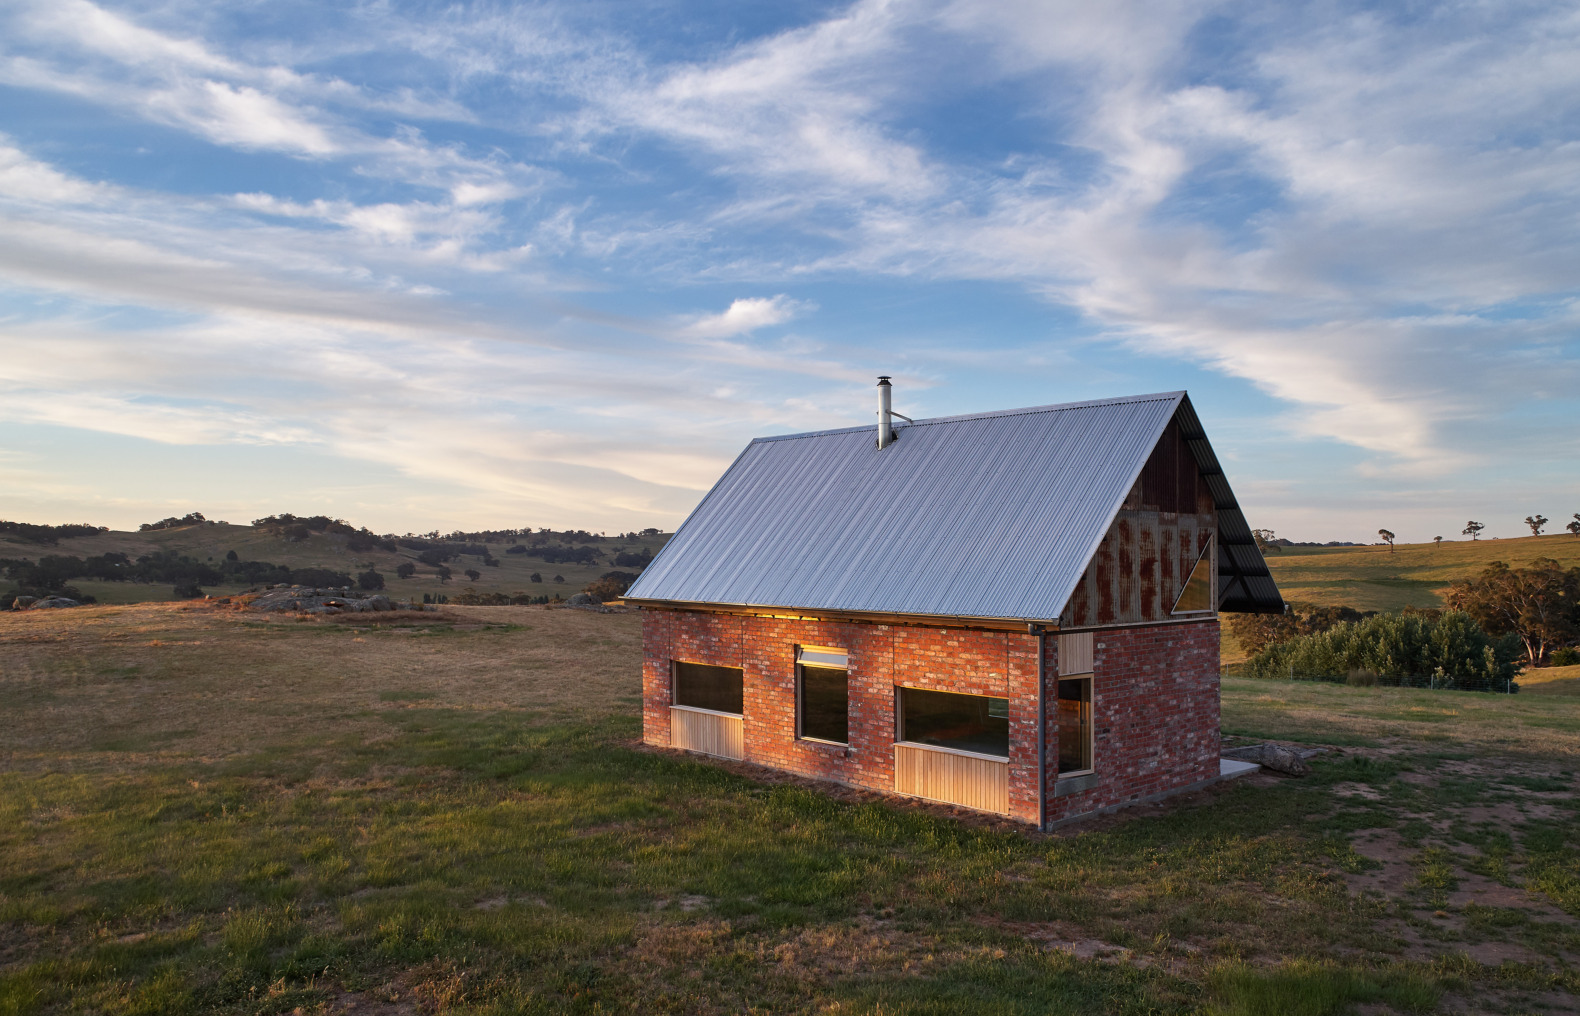 A tiny, rustic, off-grid cabin sits on vast 300 acres in Australia